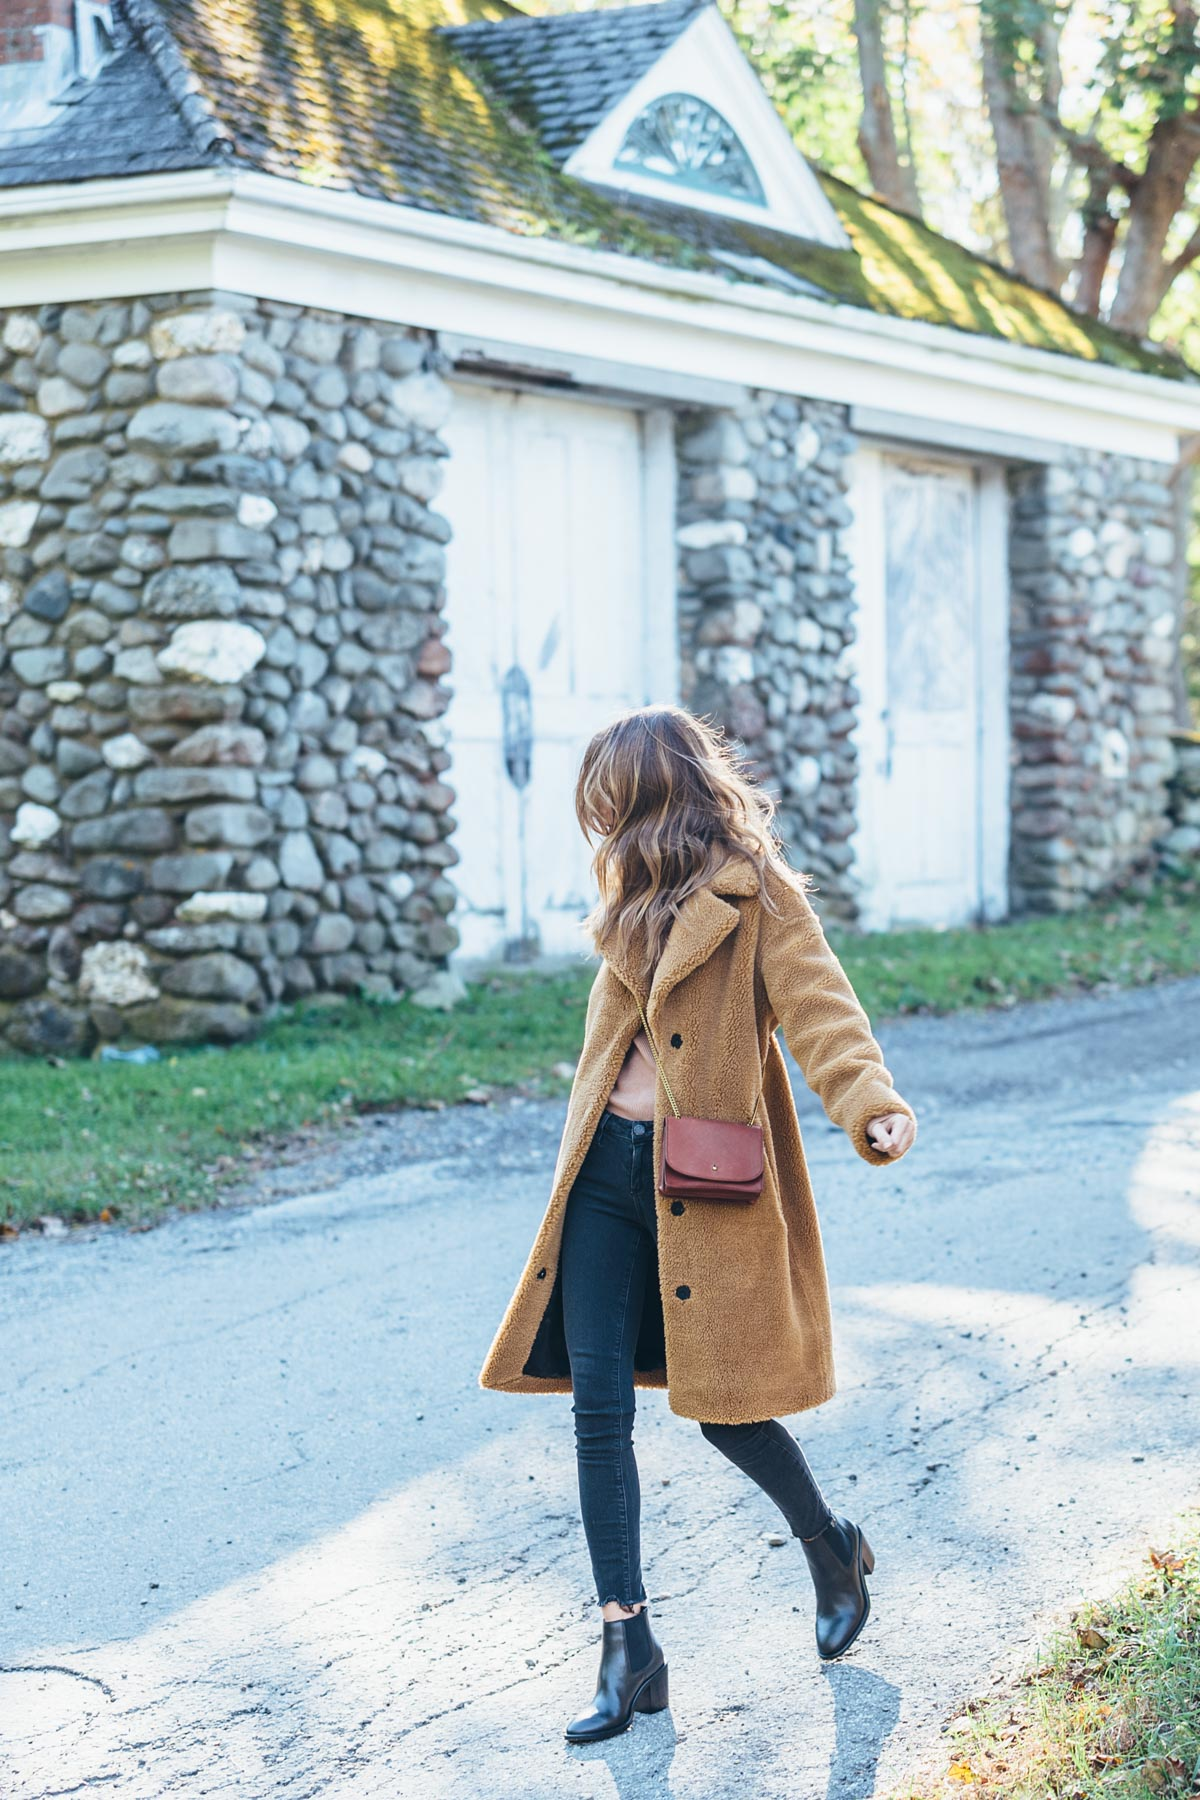 Jess Ann Kirby in the luisa viaroma STAND faux fur teddy coat and madewell crossbody bag for a fall look